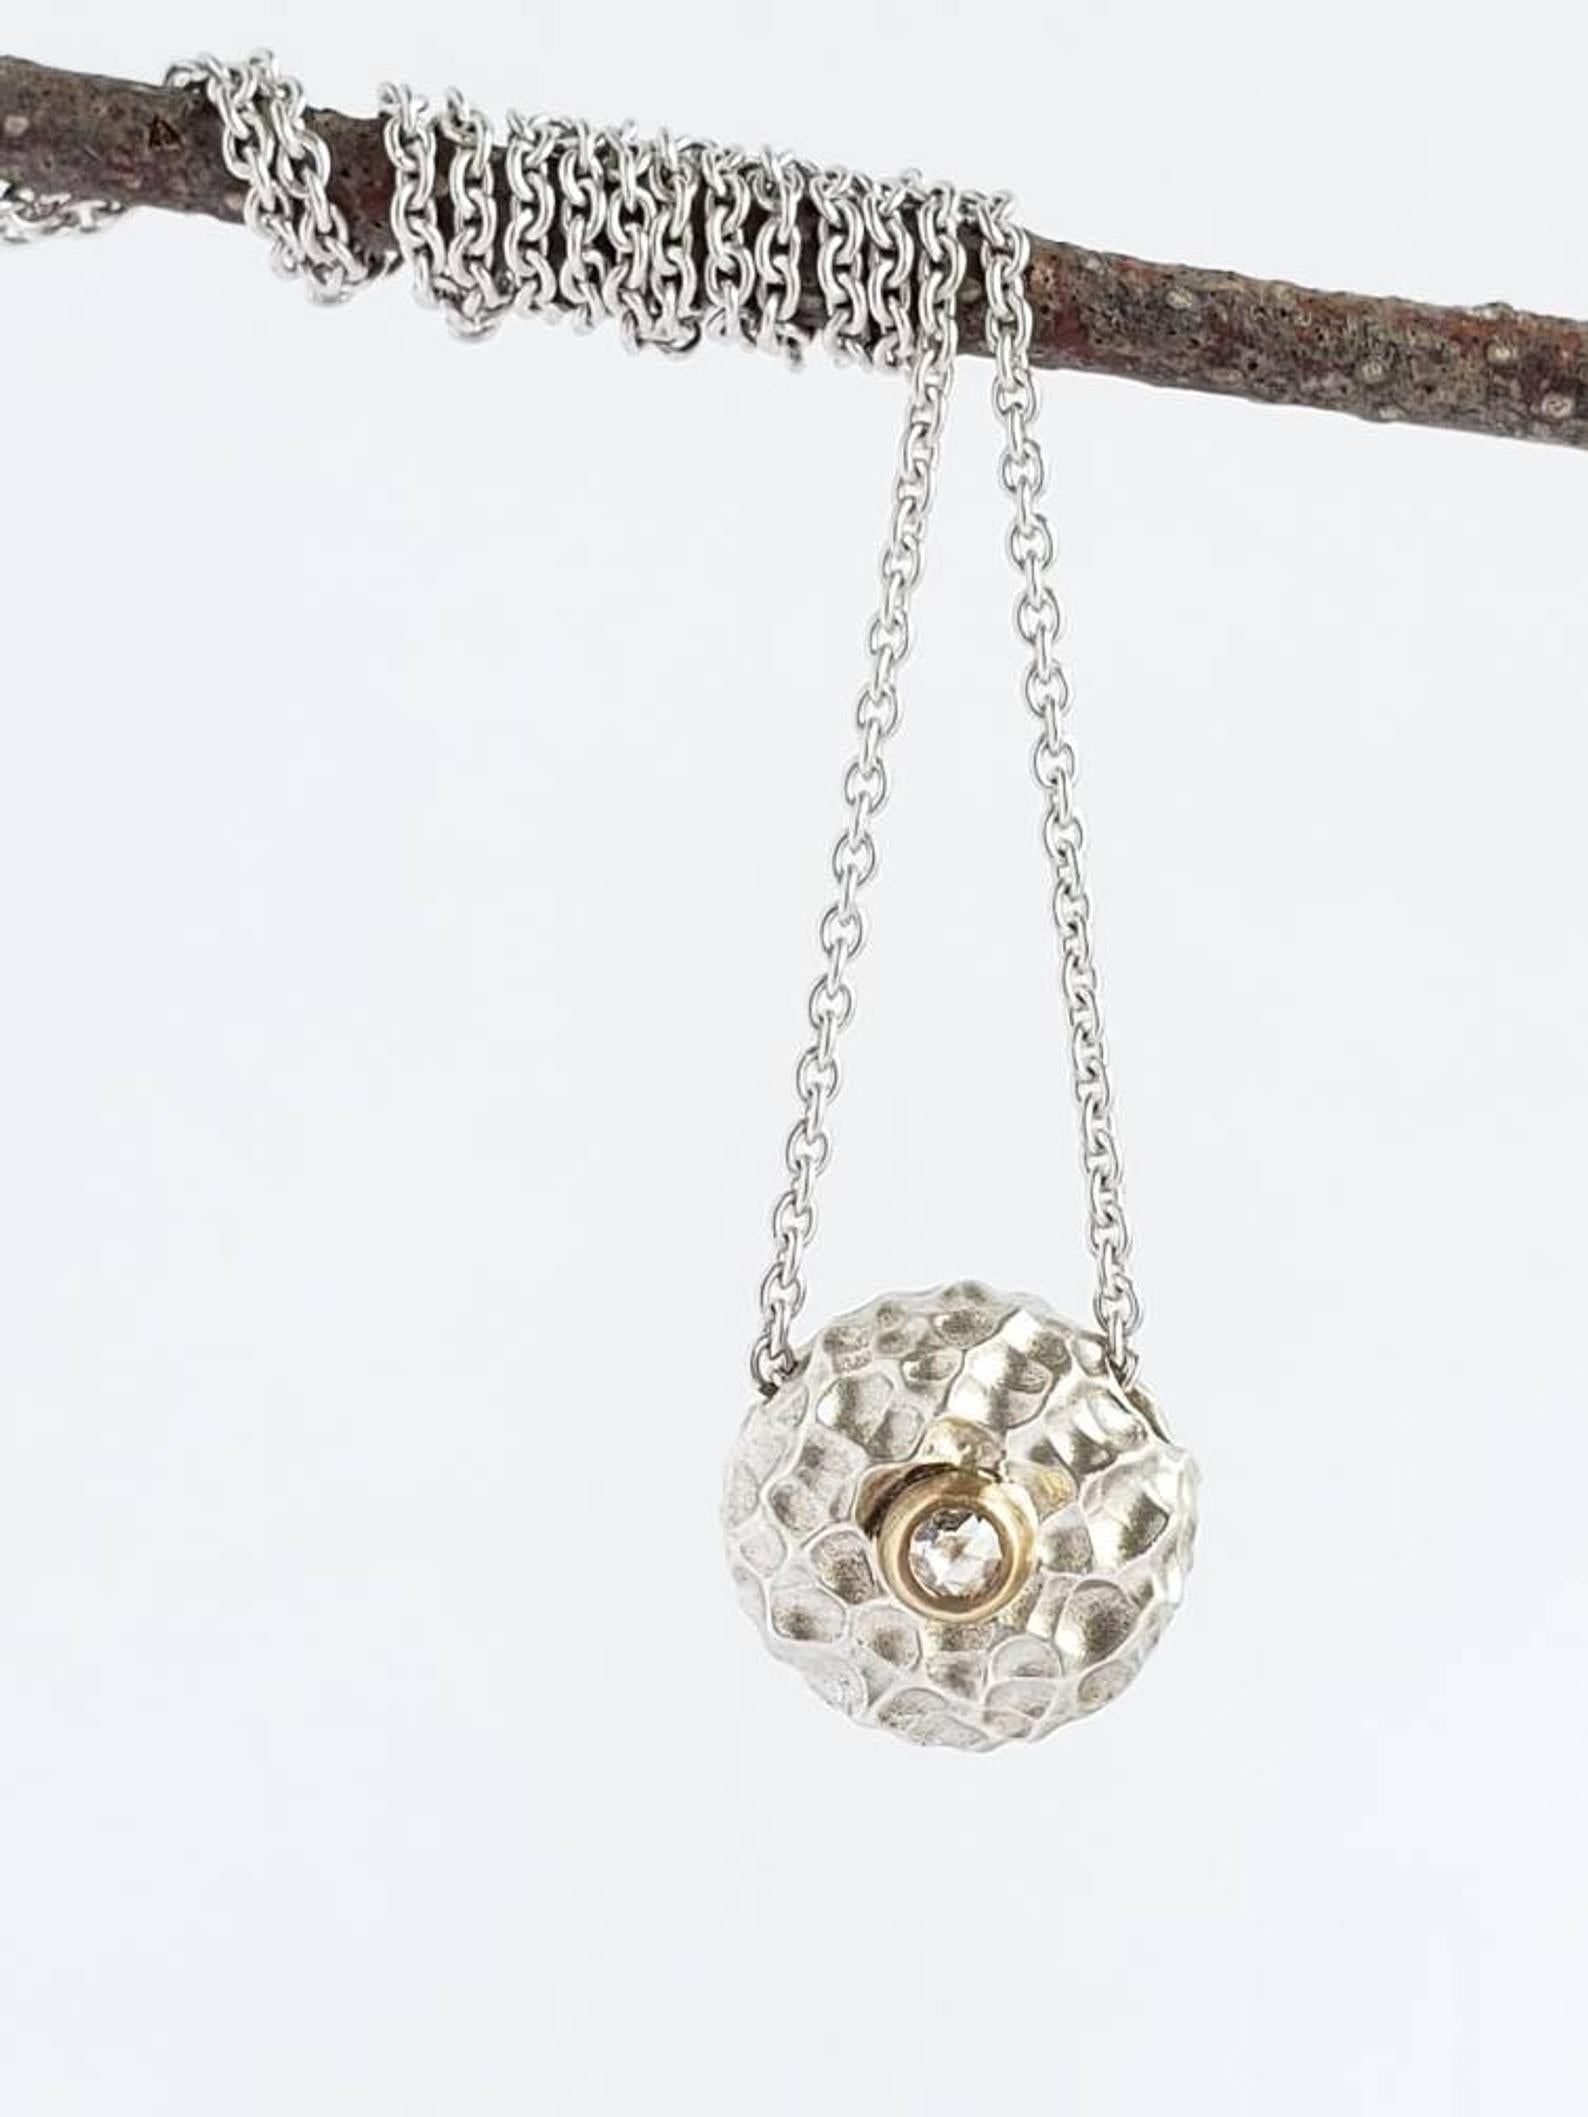 Luna, Textured Sterling Silver, 14k Gold and Diamond Pendant